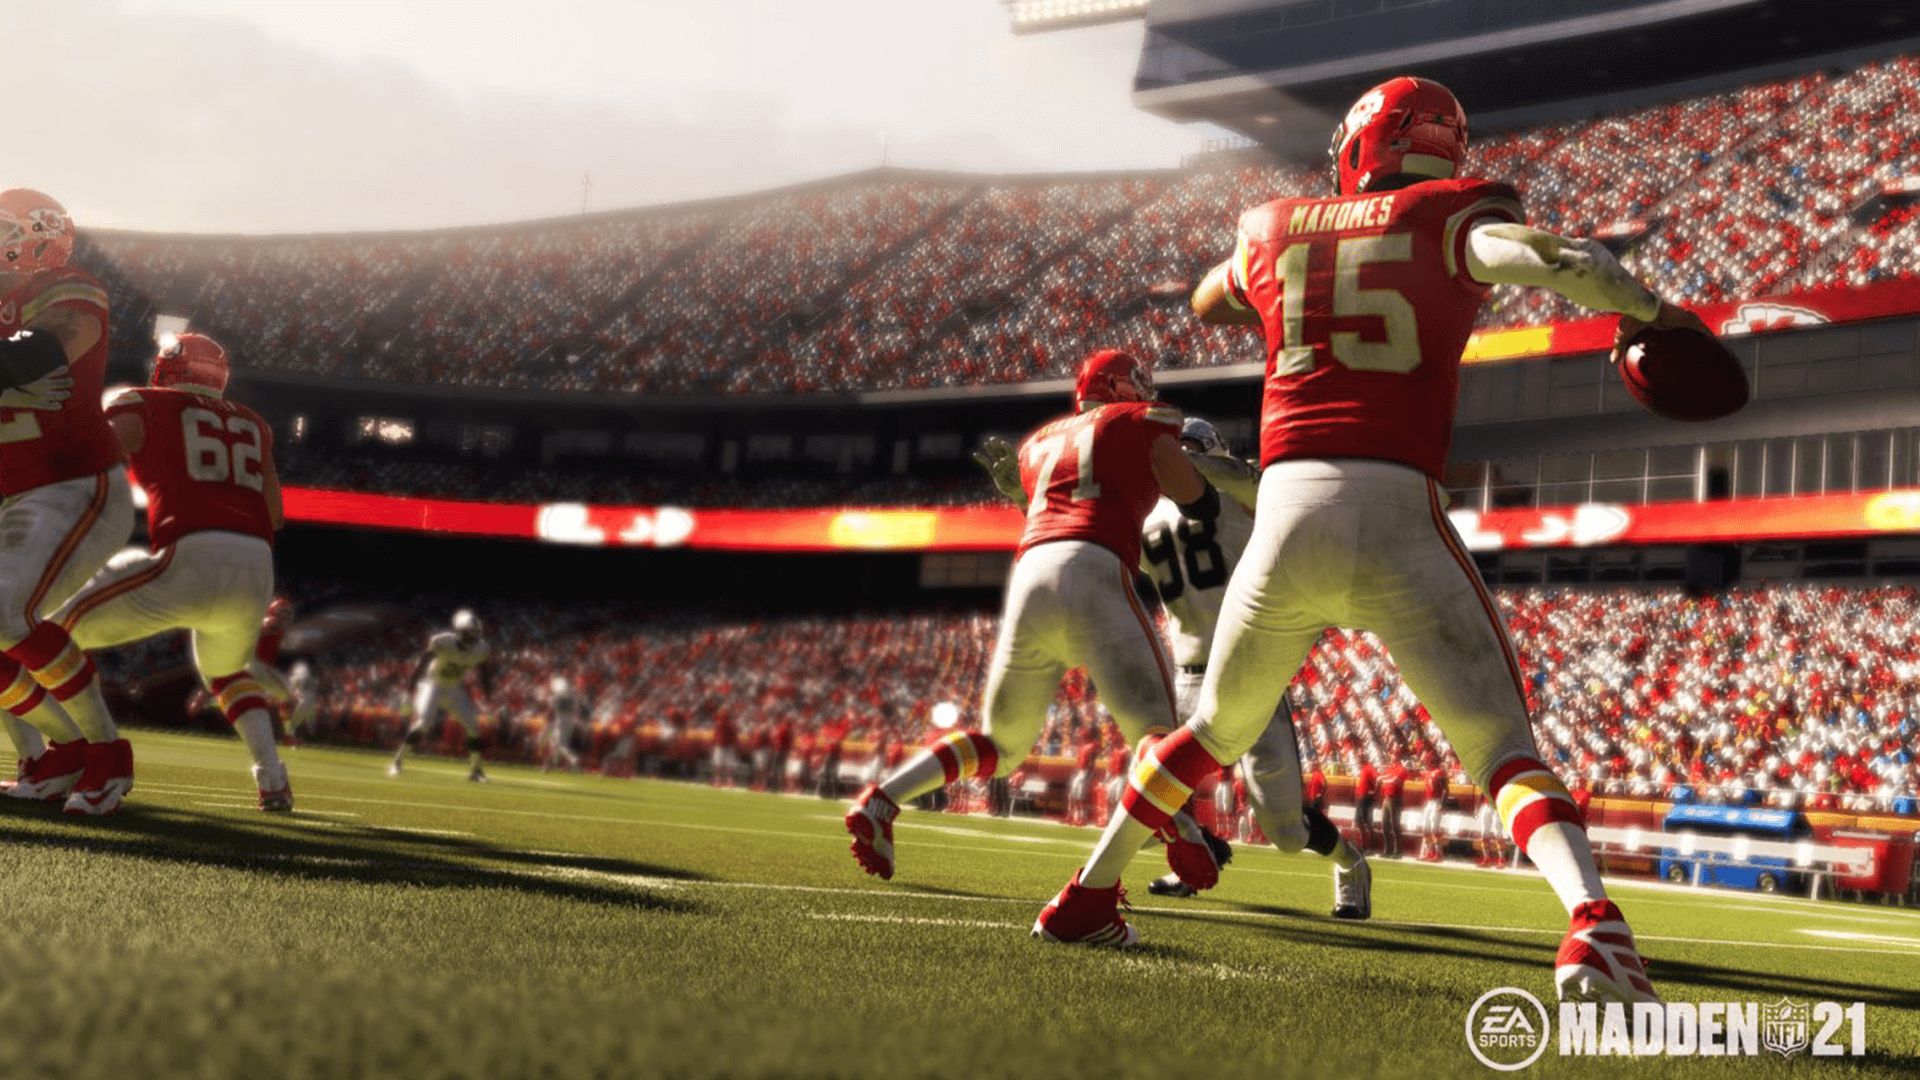 Madden NFL 21 is Having a Campbell's Chunky Tournament